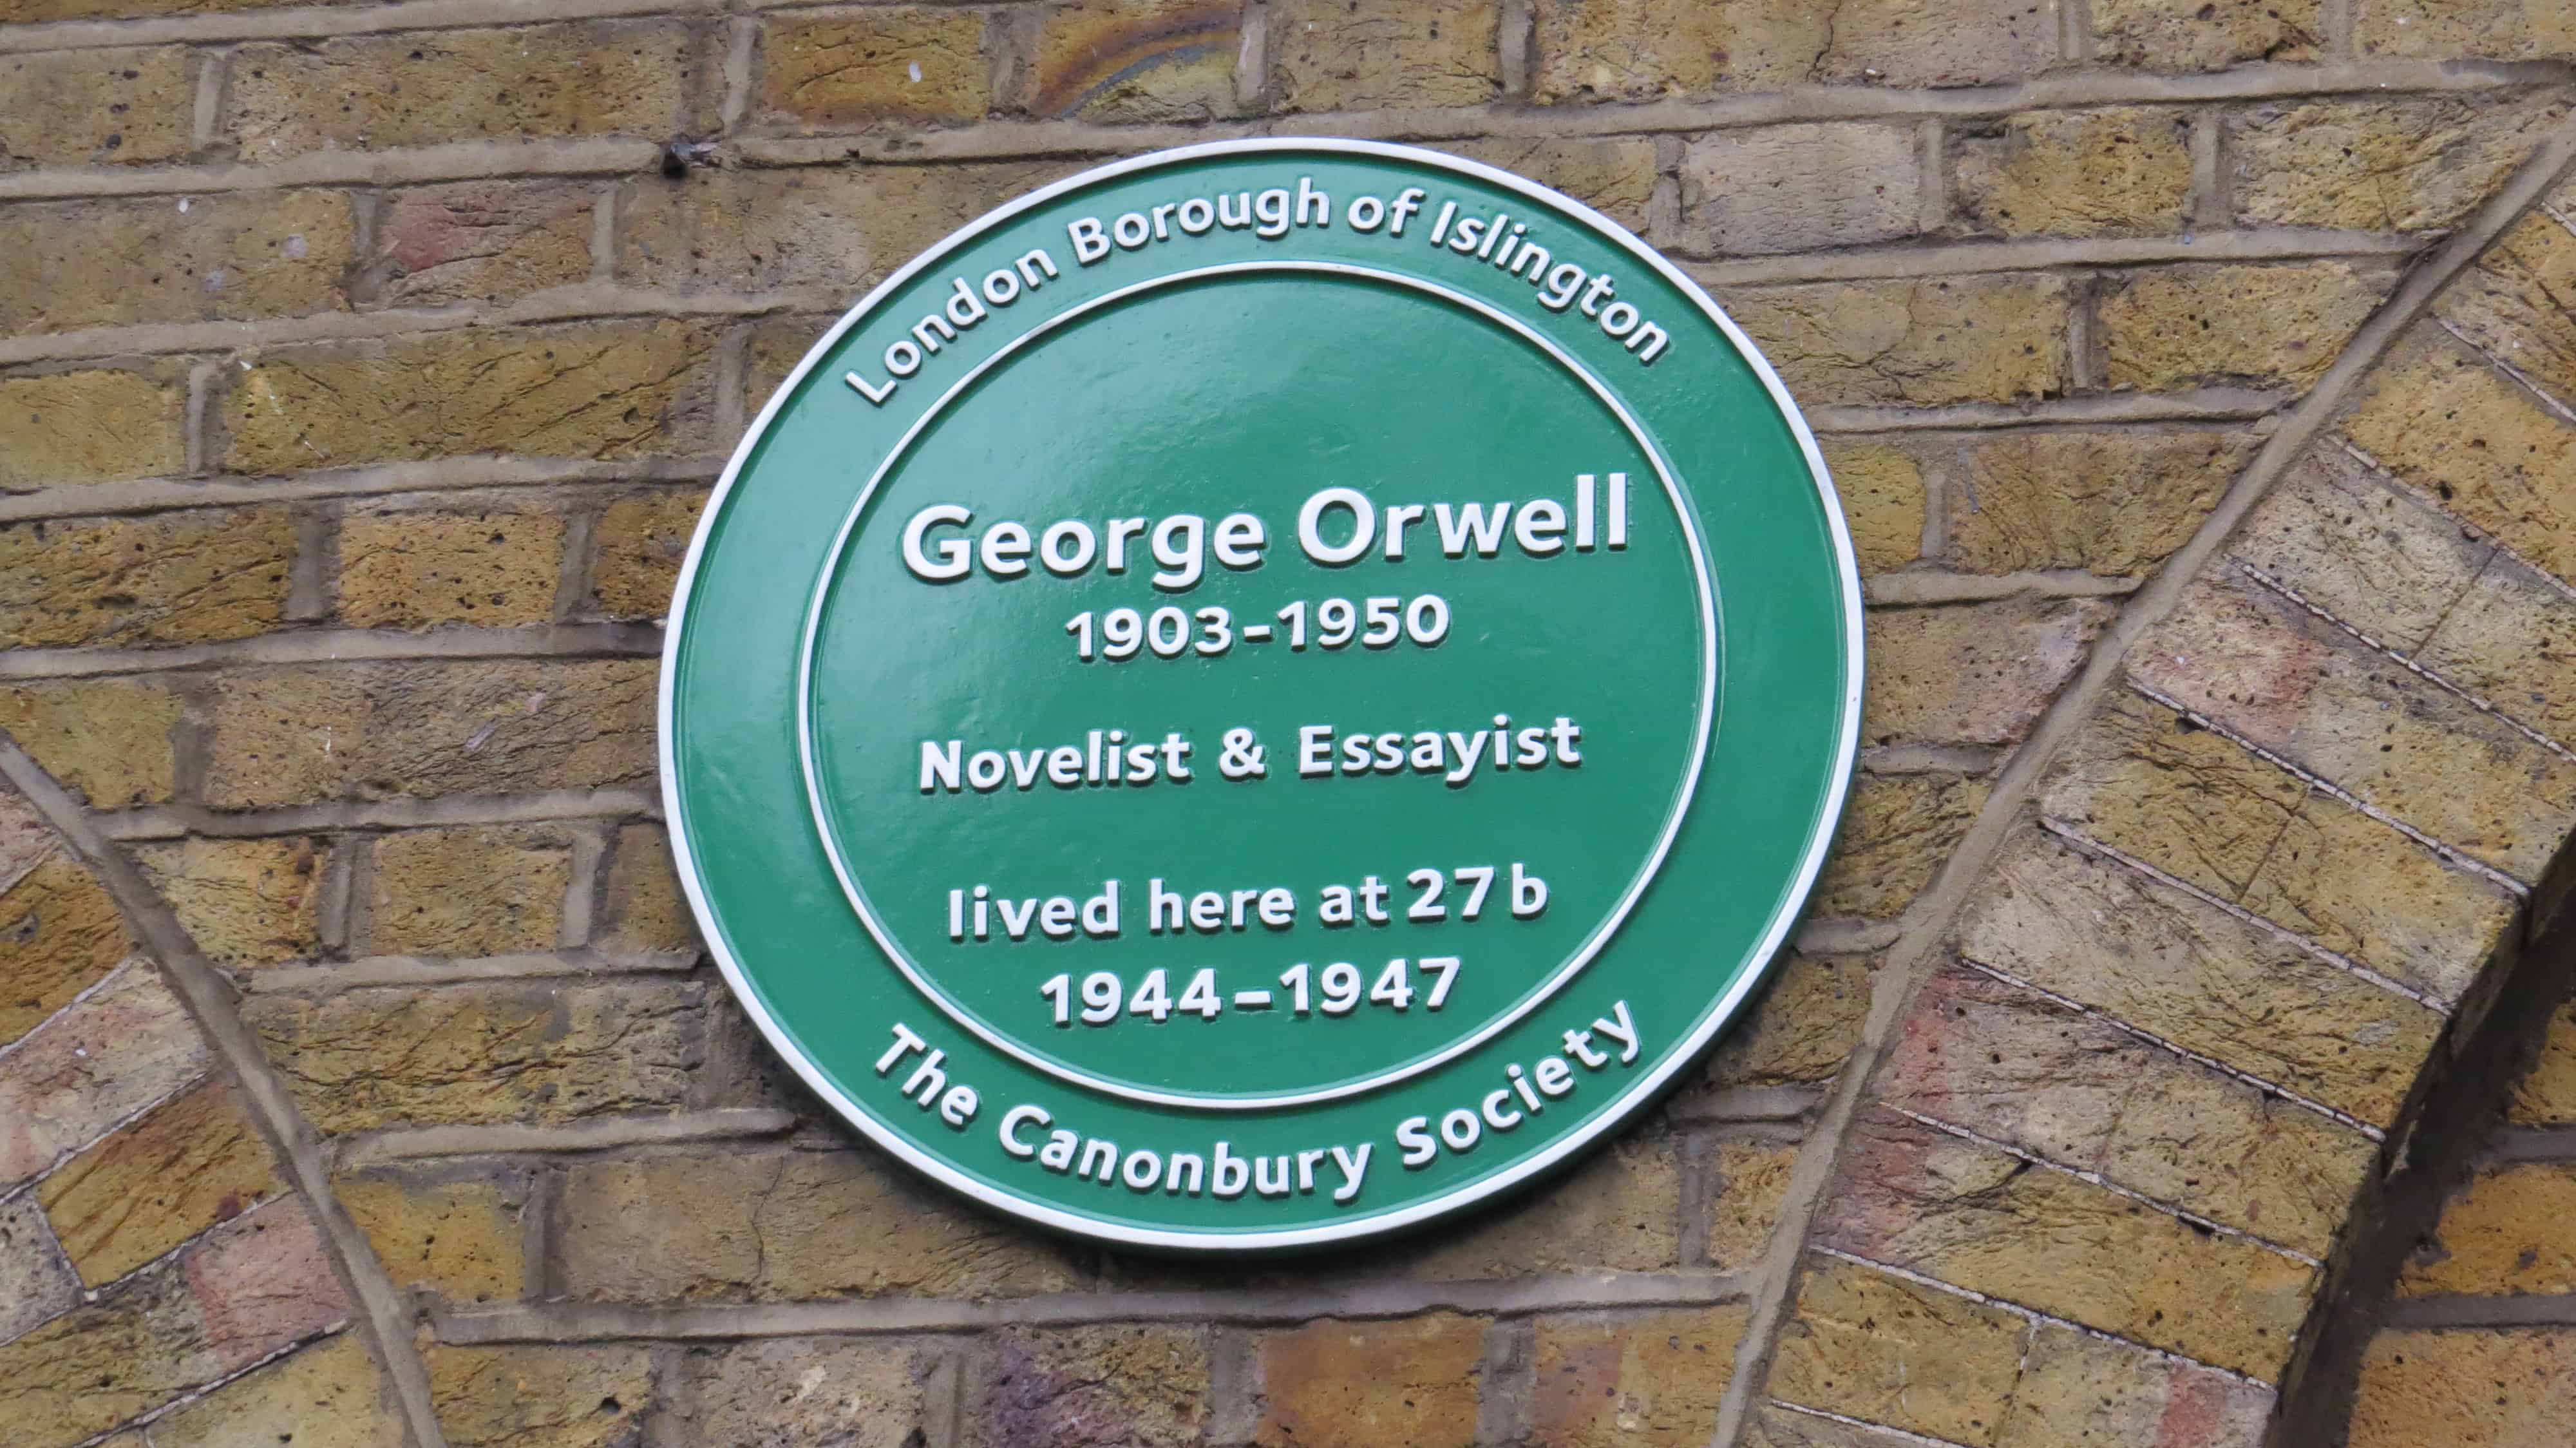 George Orwell's plaque, Canonbury Square